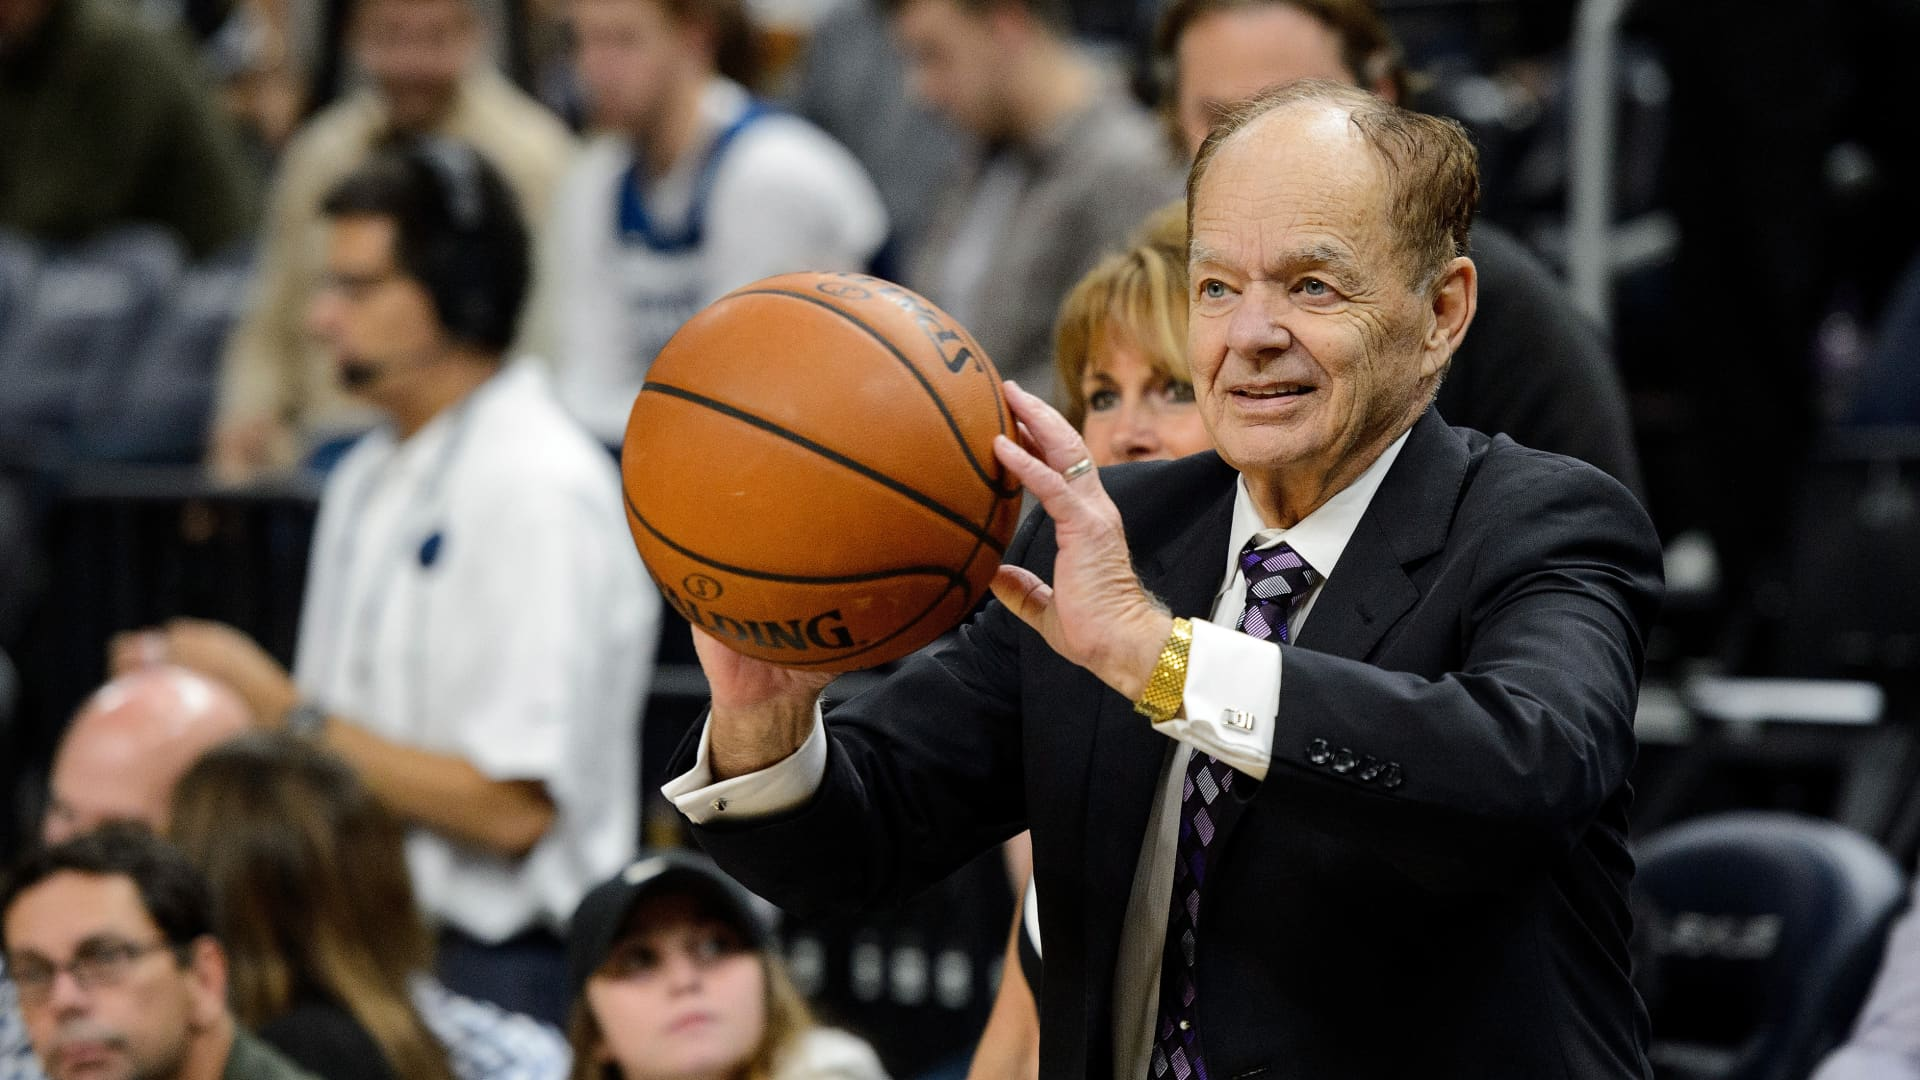 Glen Taylor, owner of the Minnesota Timberwolves passes a ball before the game between the Minnesota Timberwolves and the San Antonio Spurs on November 15, 2017 at the Target Center in Minneapolis, Minnesota.